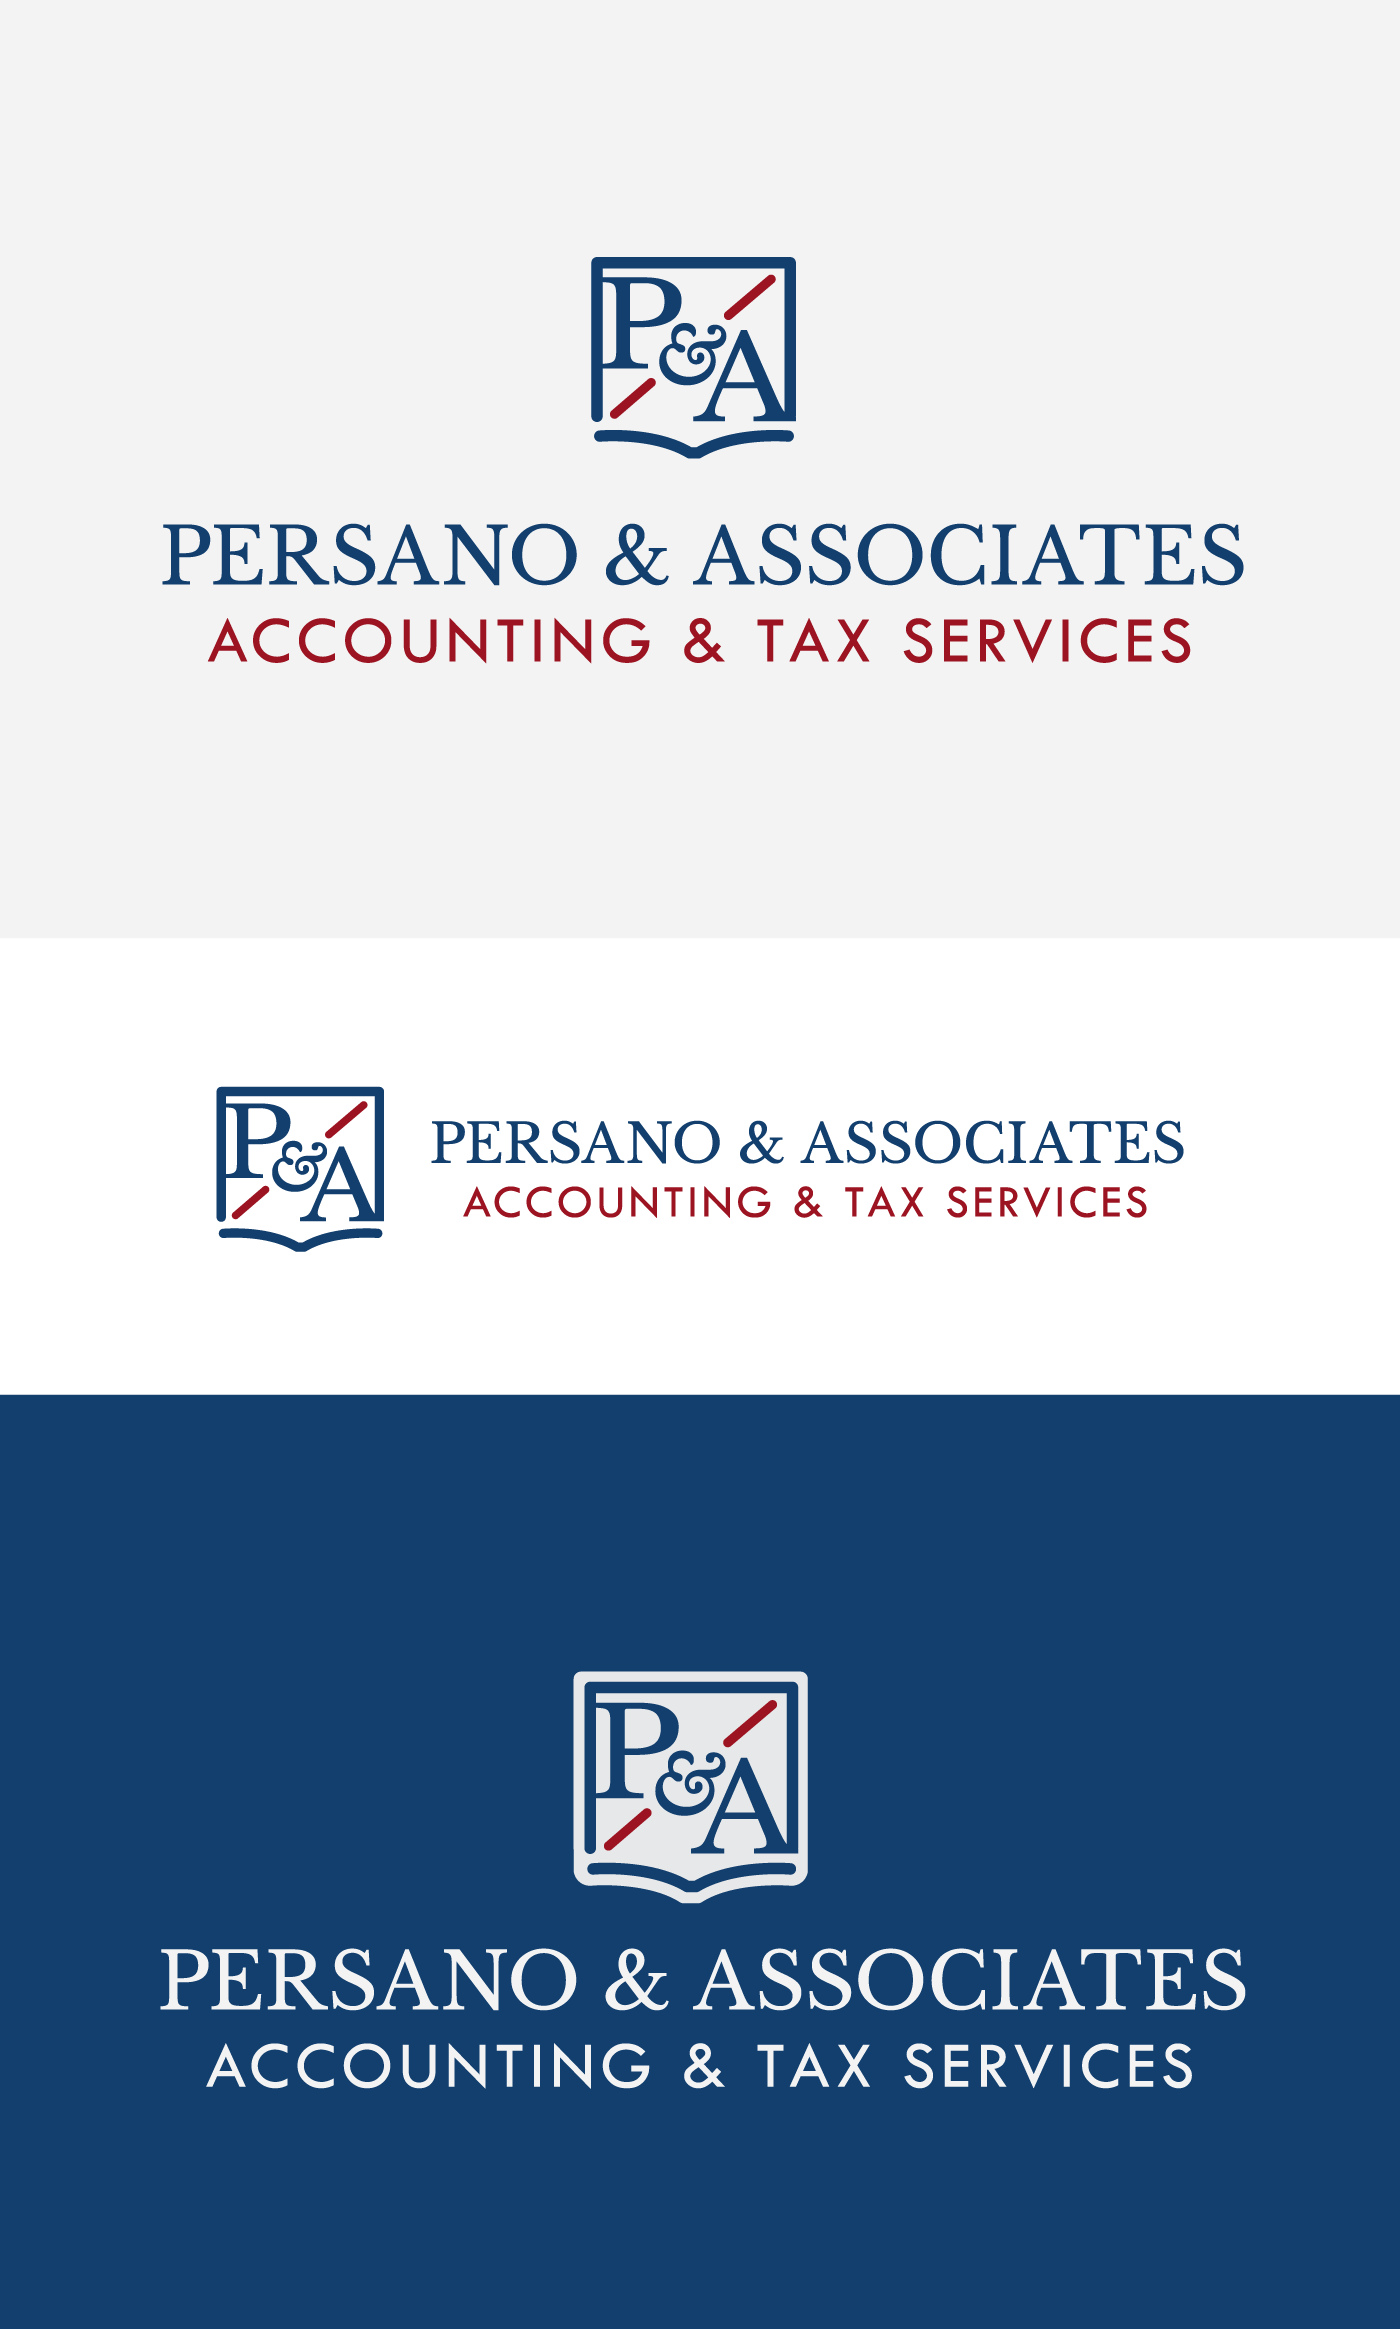 Logo for Persano & Associates - a small business in Somers, Connecticut that offers accounting and tax services.